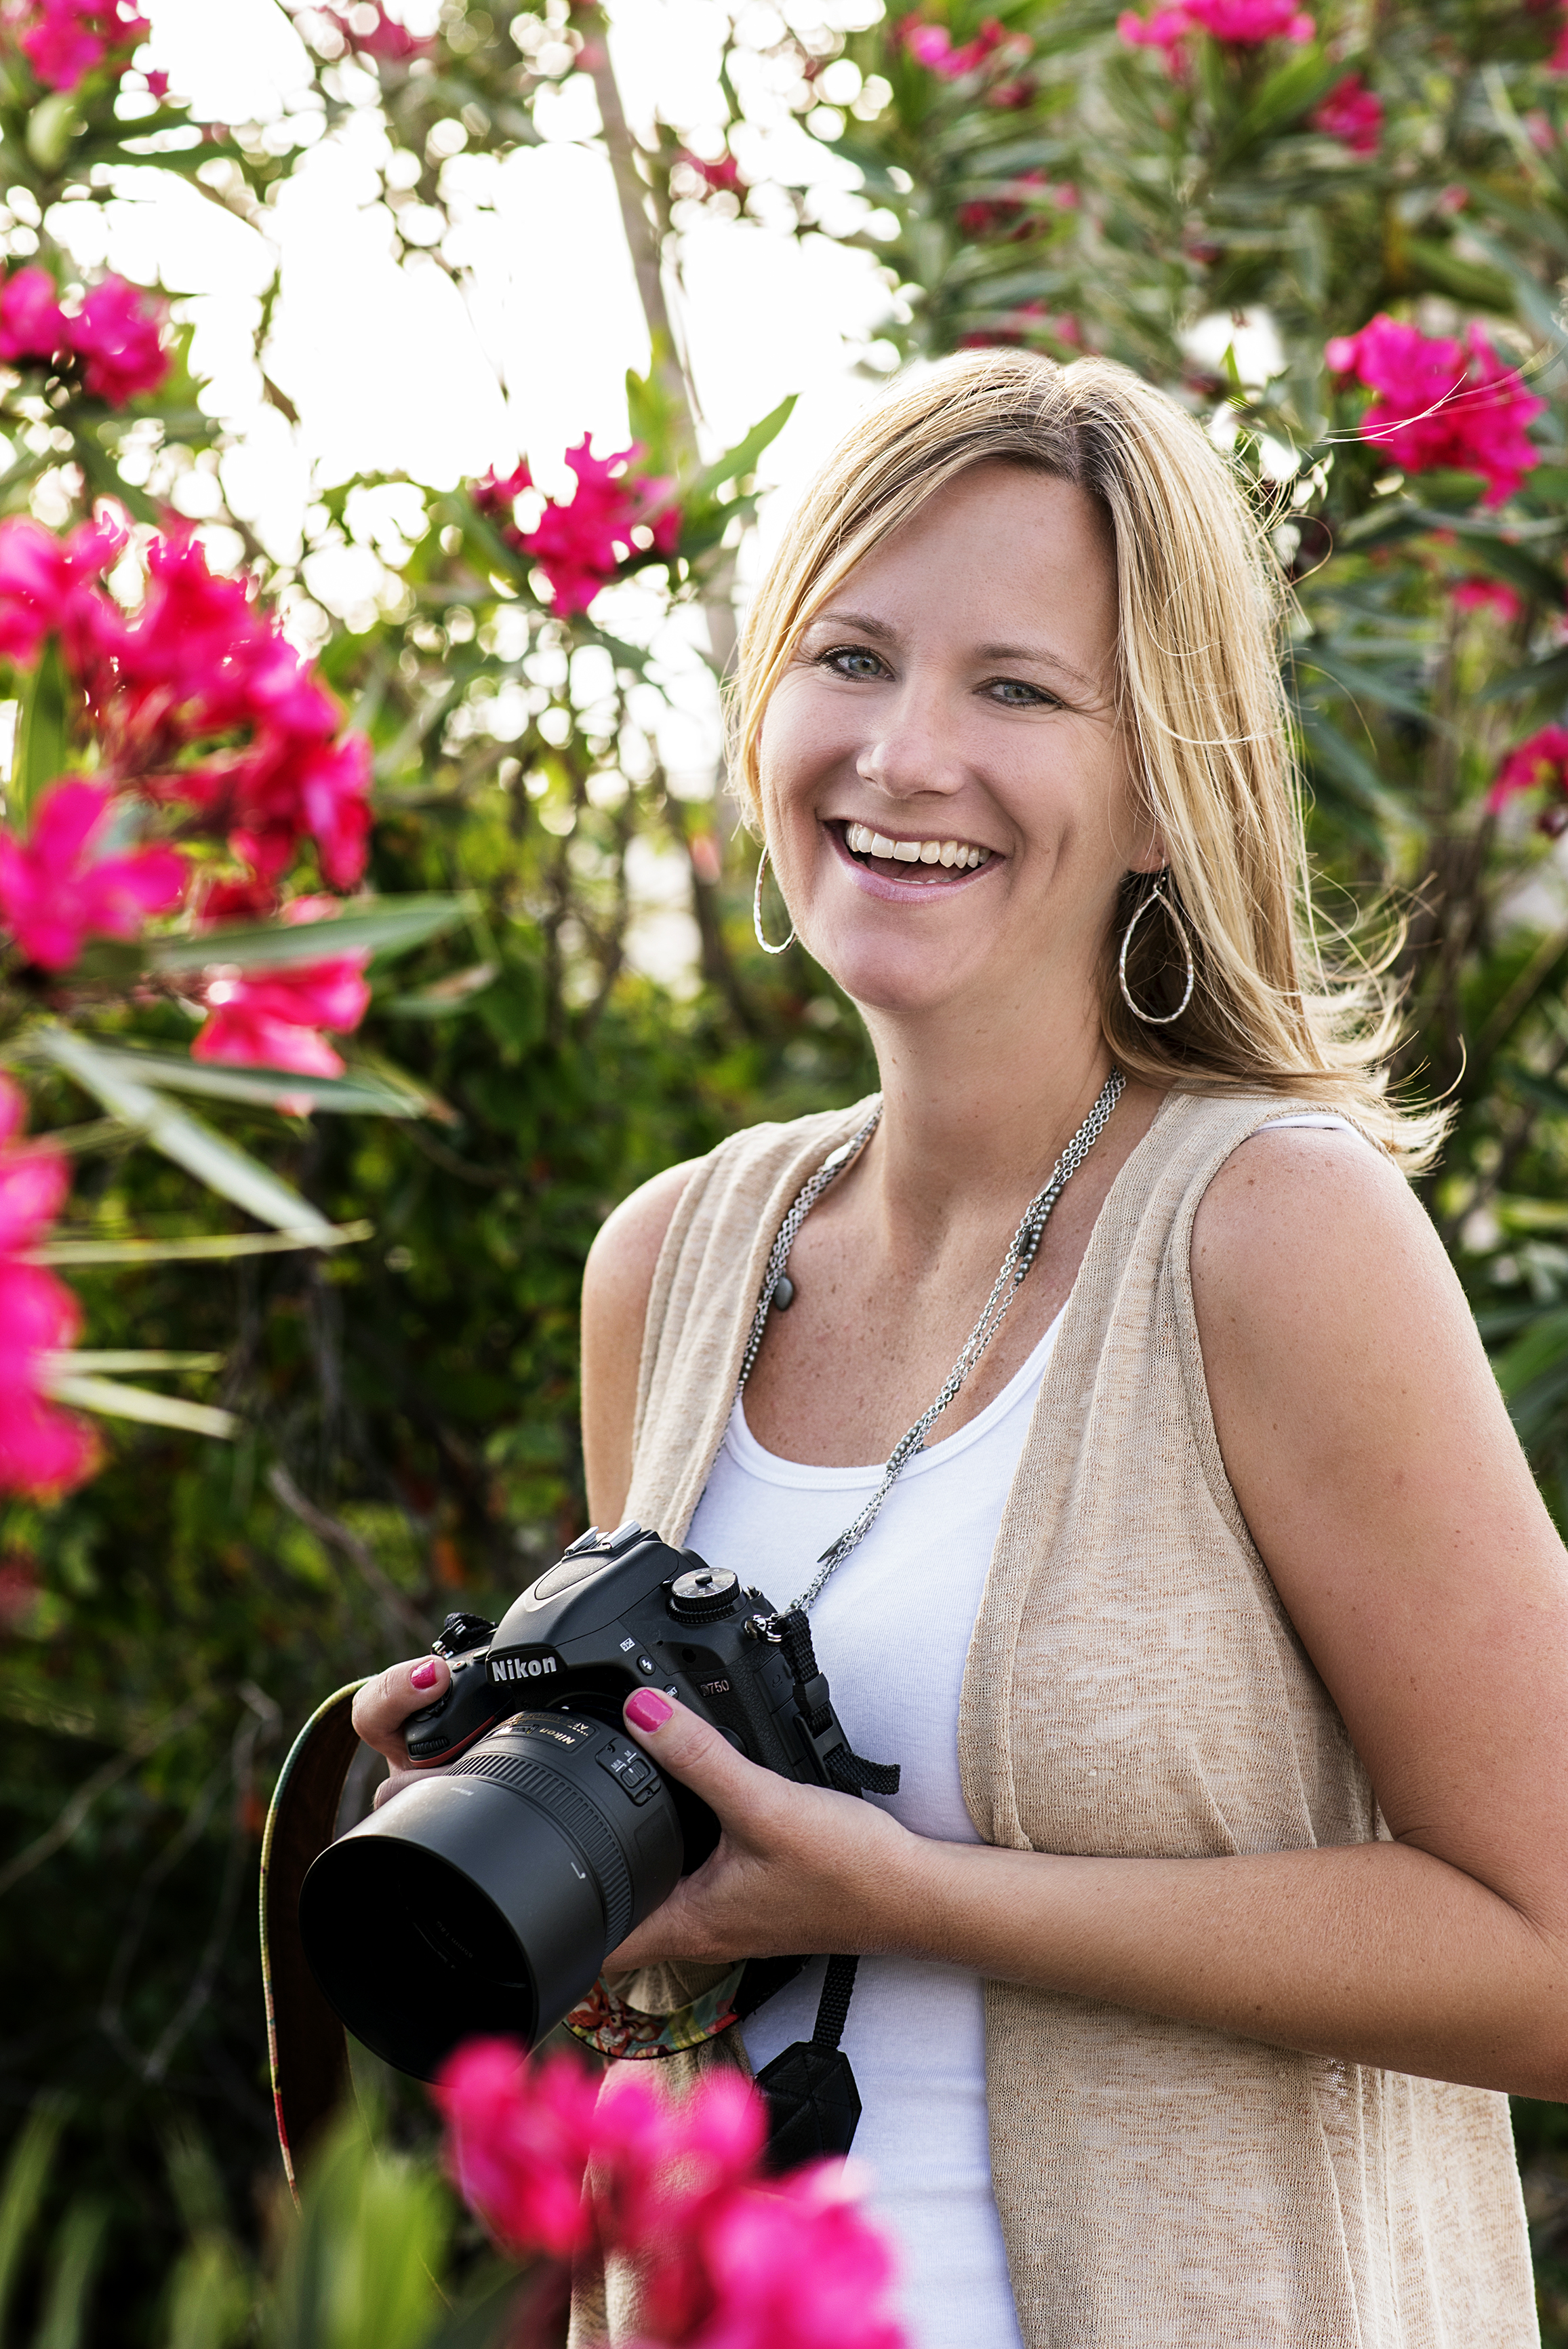 Jenn Kendall, the face behind in the camera ;)  Photo credit: Kimi with Carrier Photography